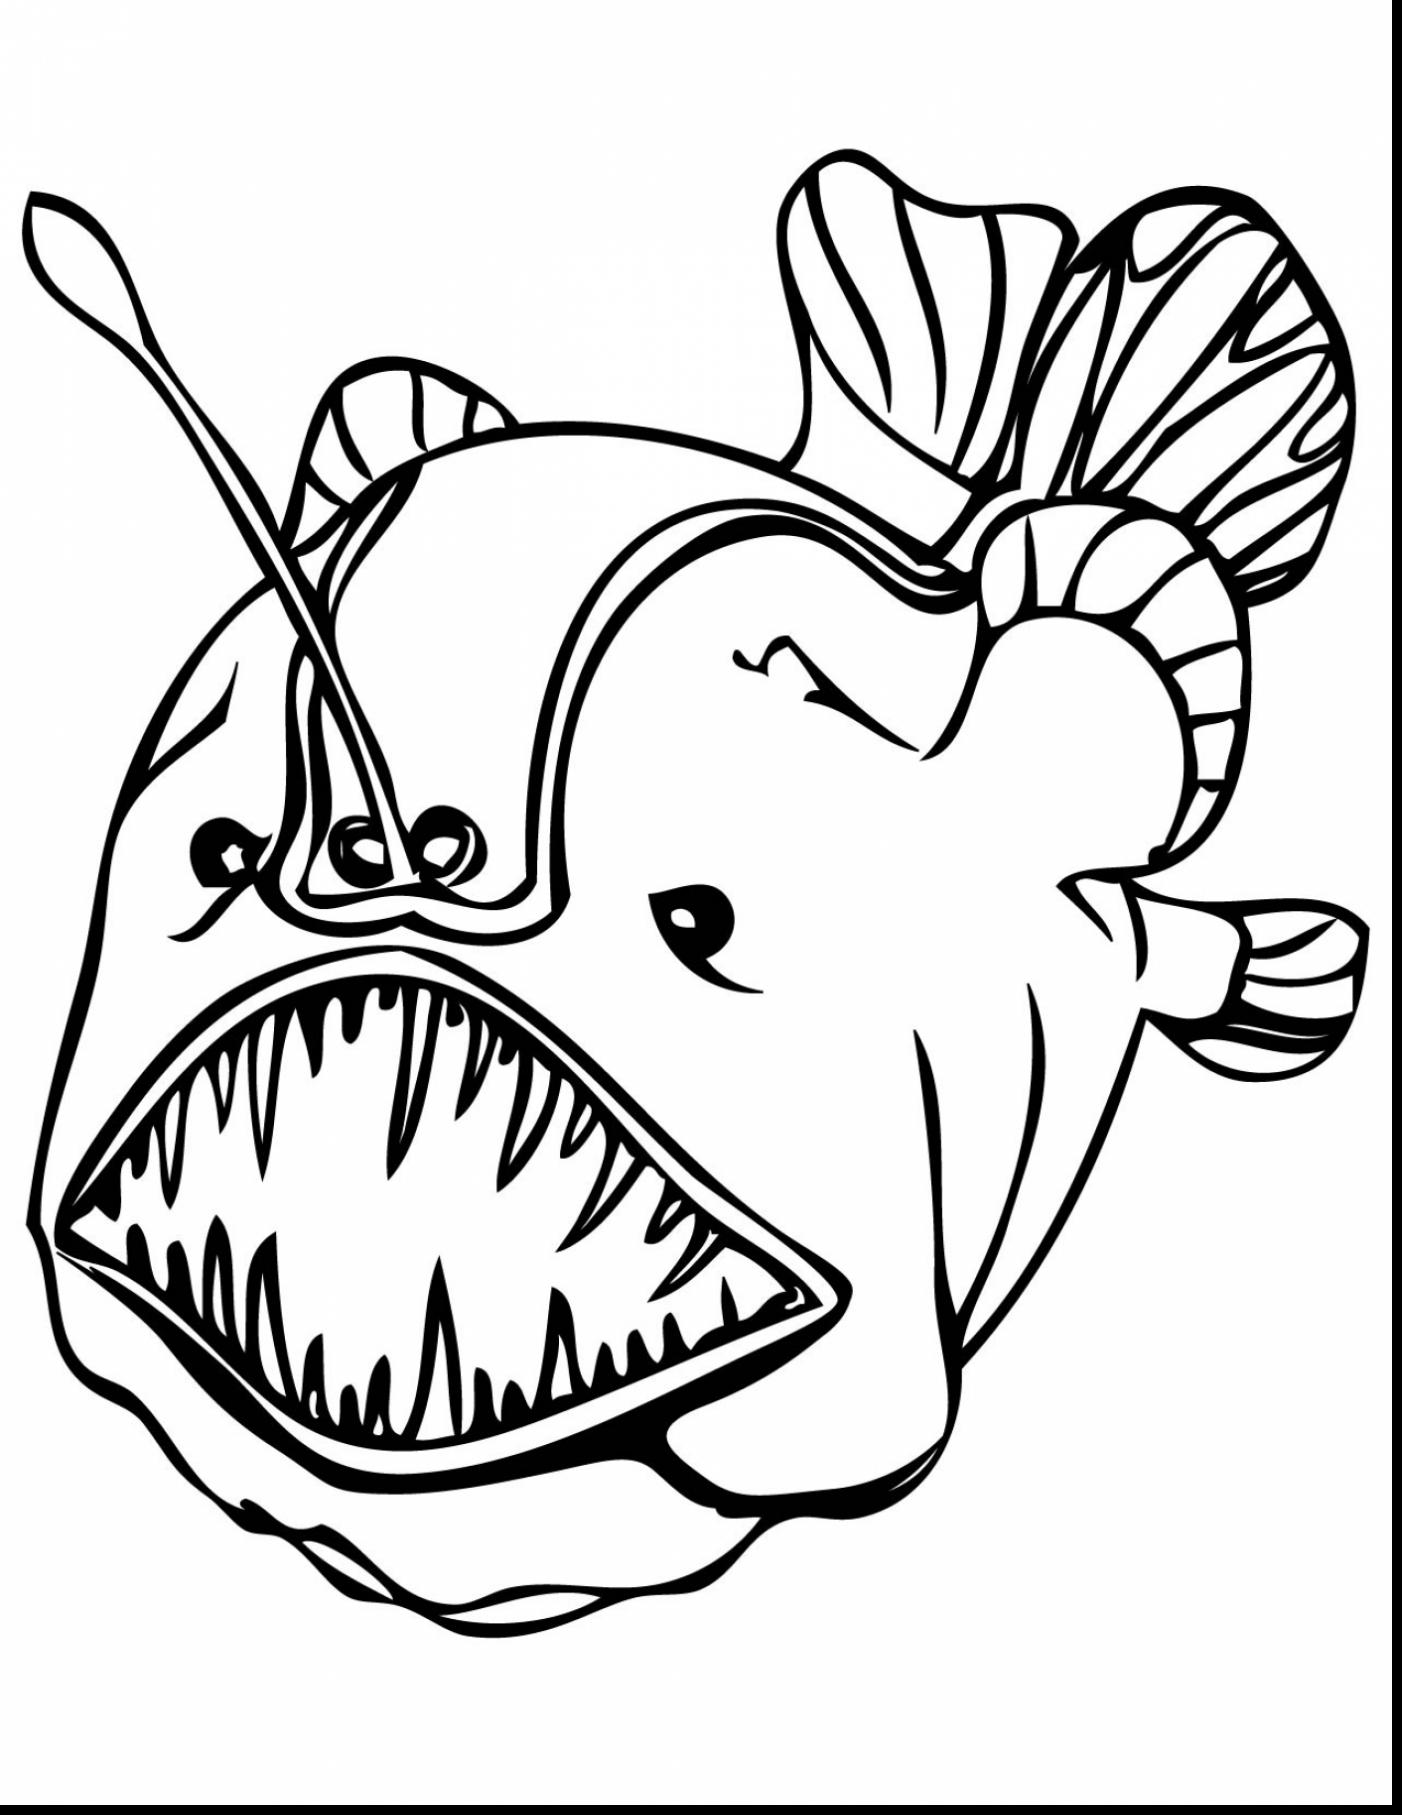 fish color fish coloring page 2020 printable activity shelter fish color